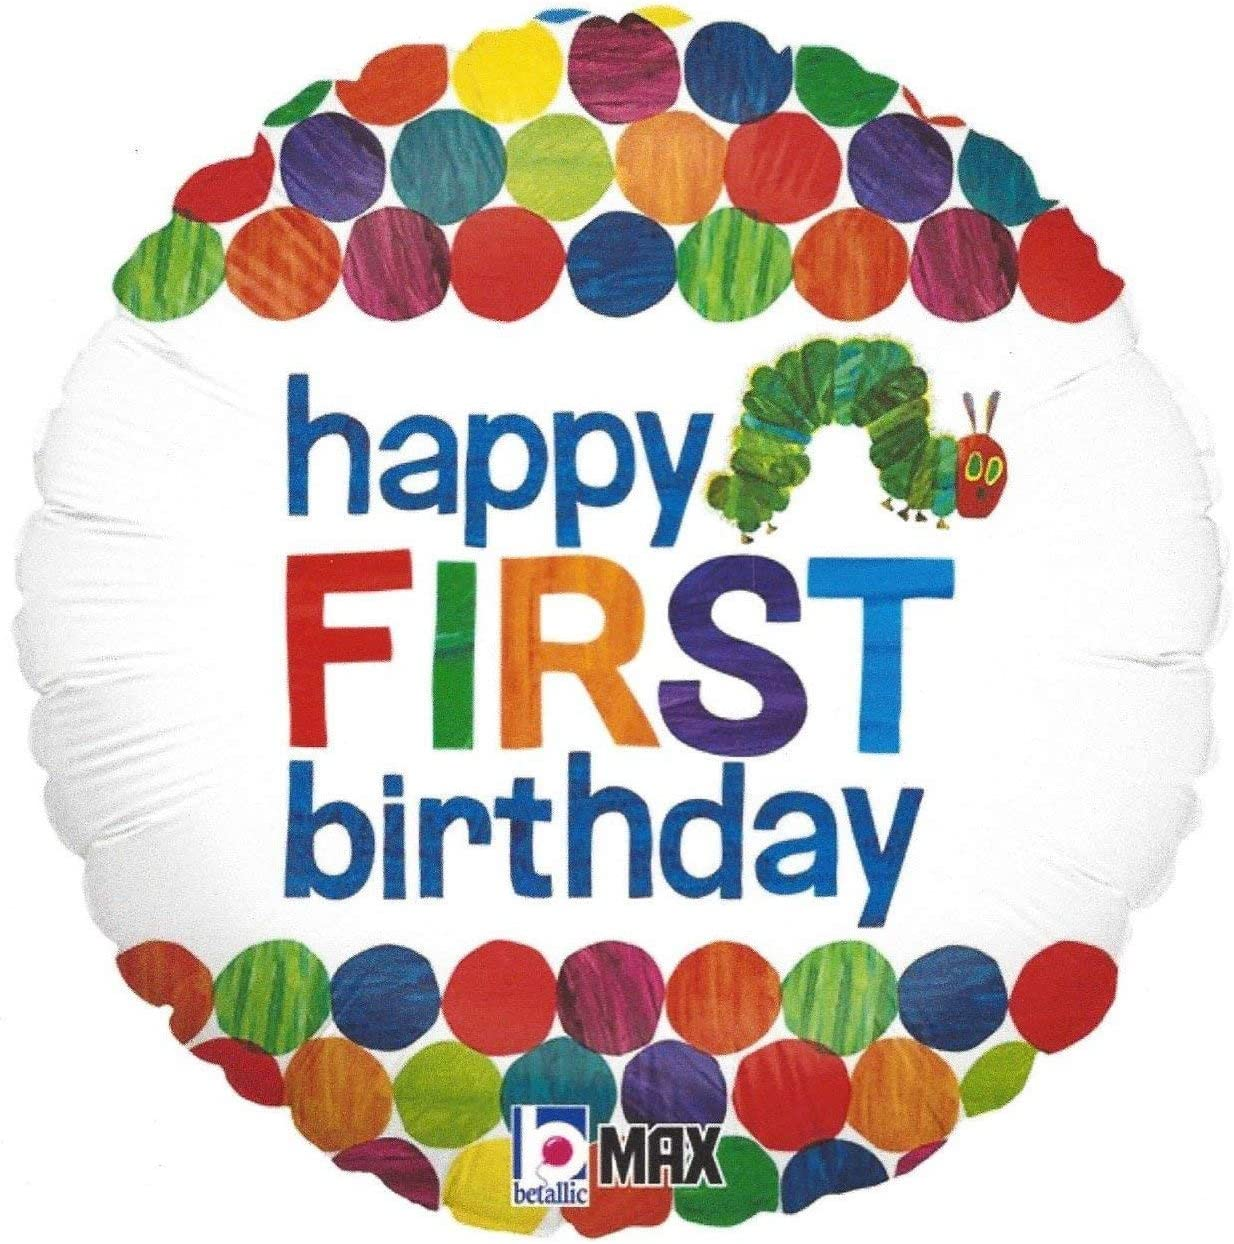 Happy 1st Birthday Balloon The Very Hungry Caterpillar by Eric C